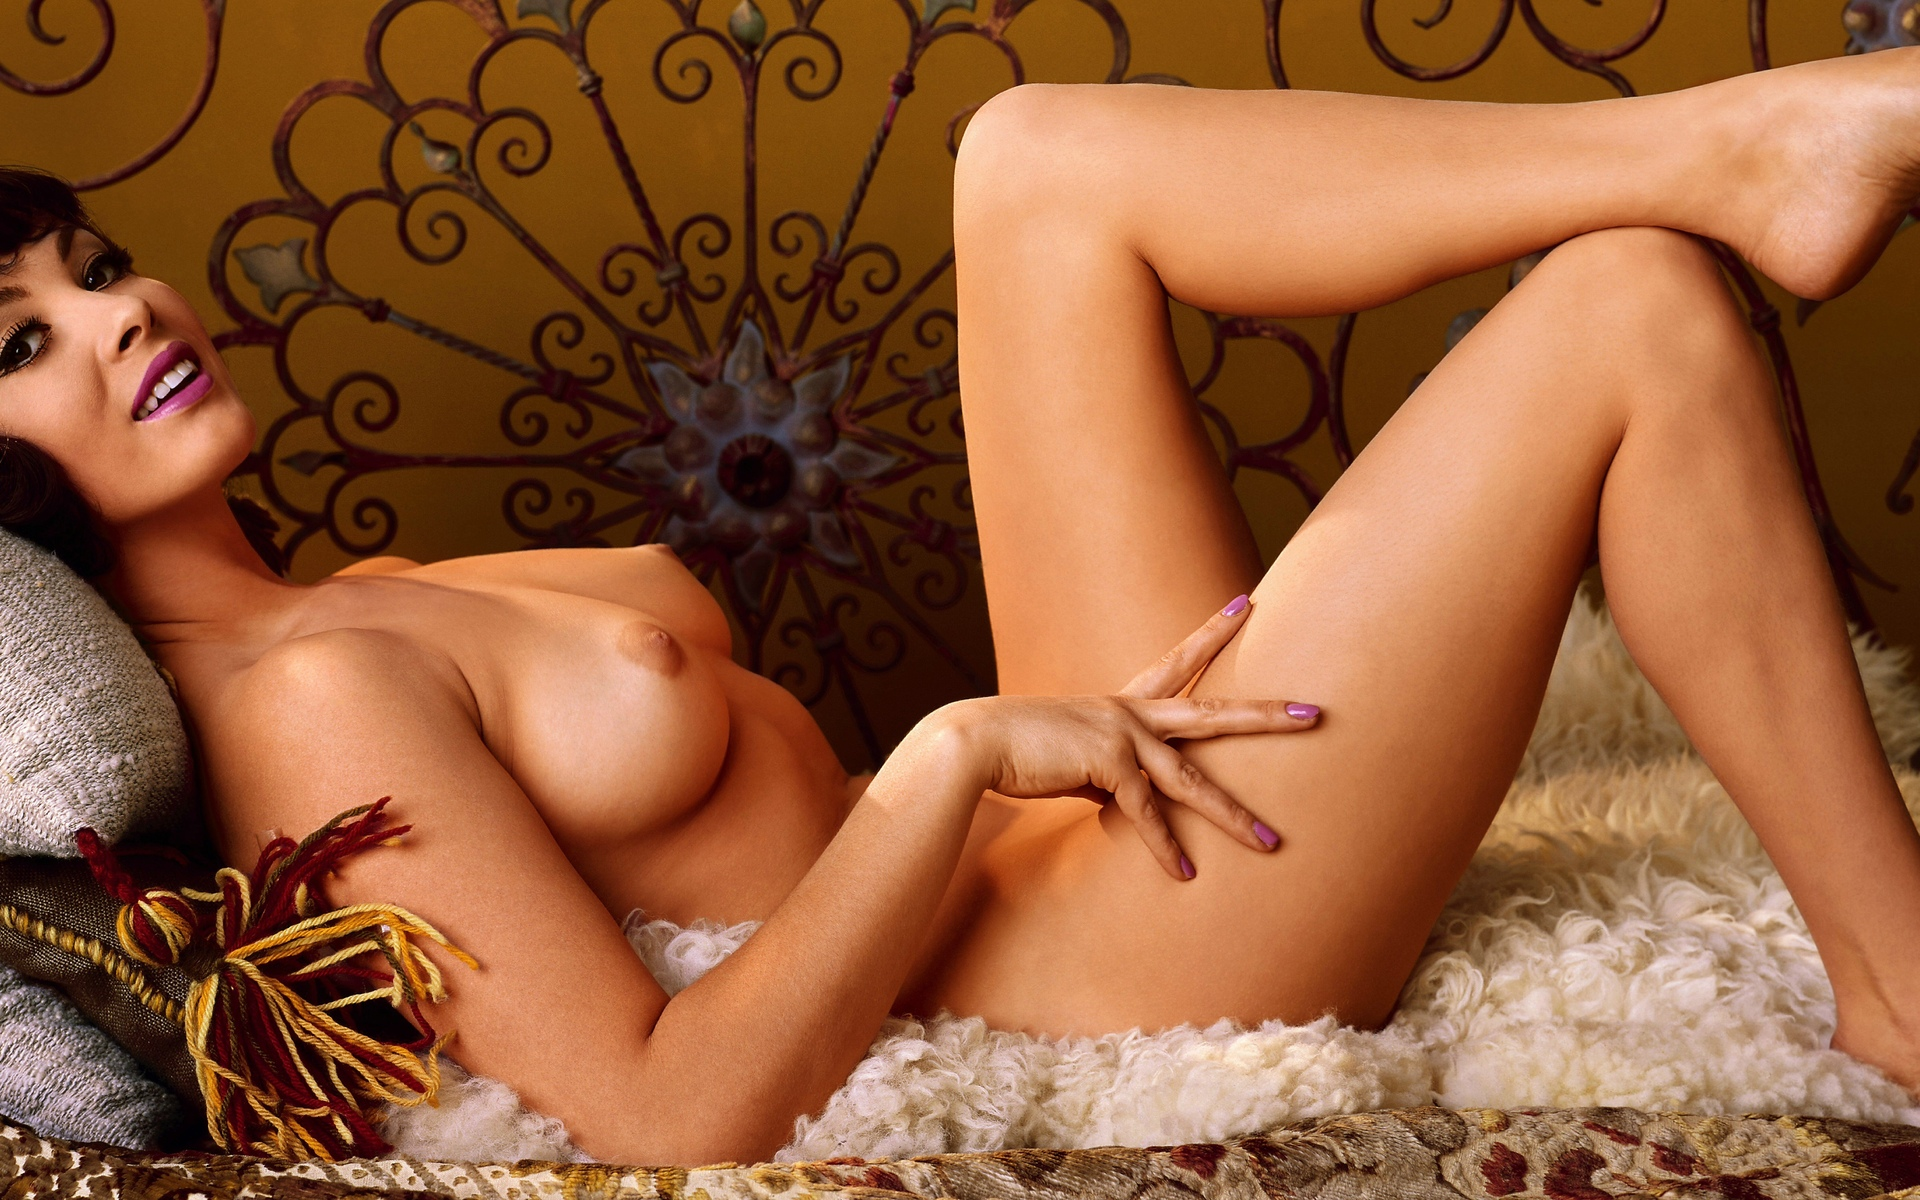 Hot centerfold girls and naked women photos